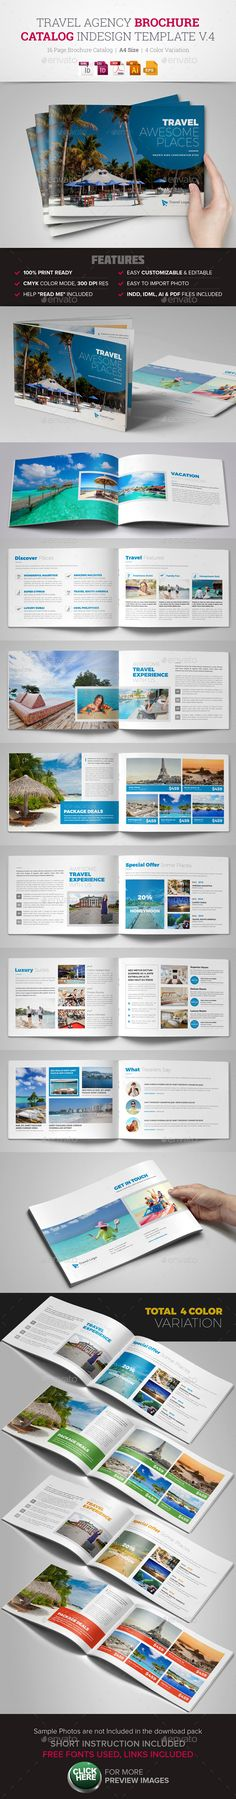 Travel Agency Brochure Catalog InDesign Template #design Download: http://graphicriver.net/item/travel-agency-brochure-catalog-indesign-v4-/13216832?ref=ksioks